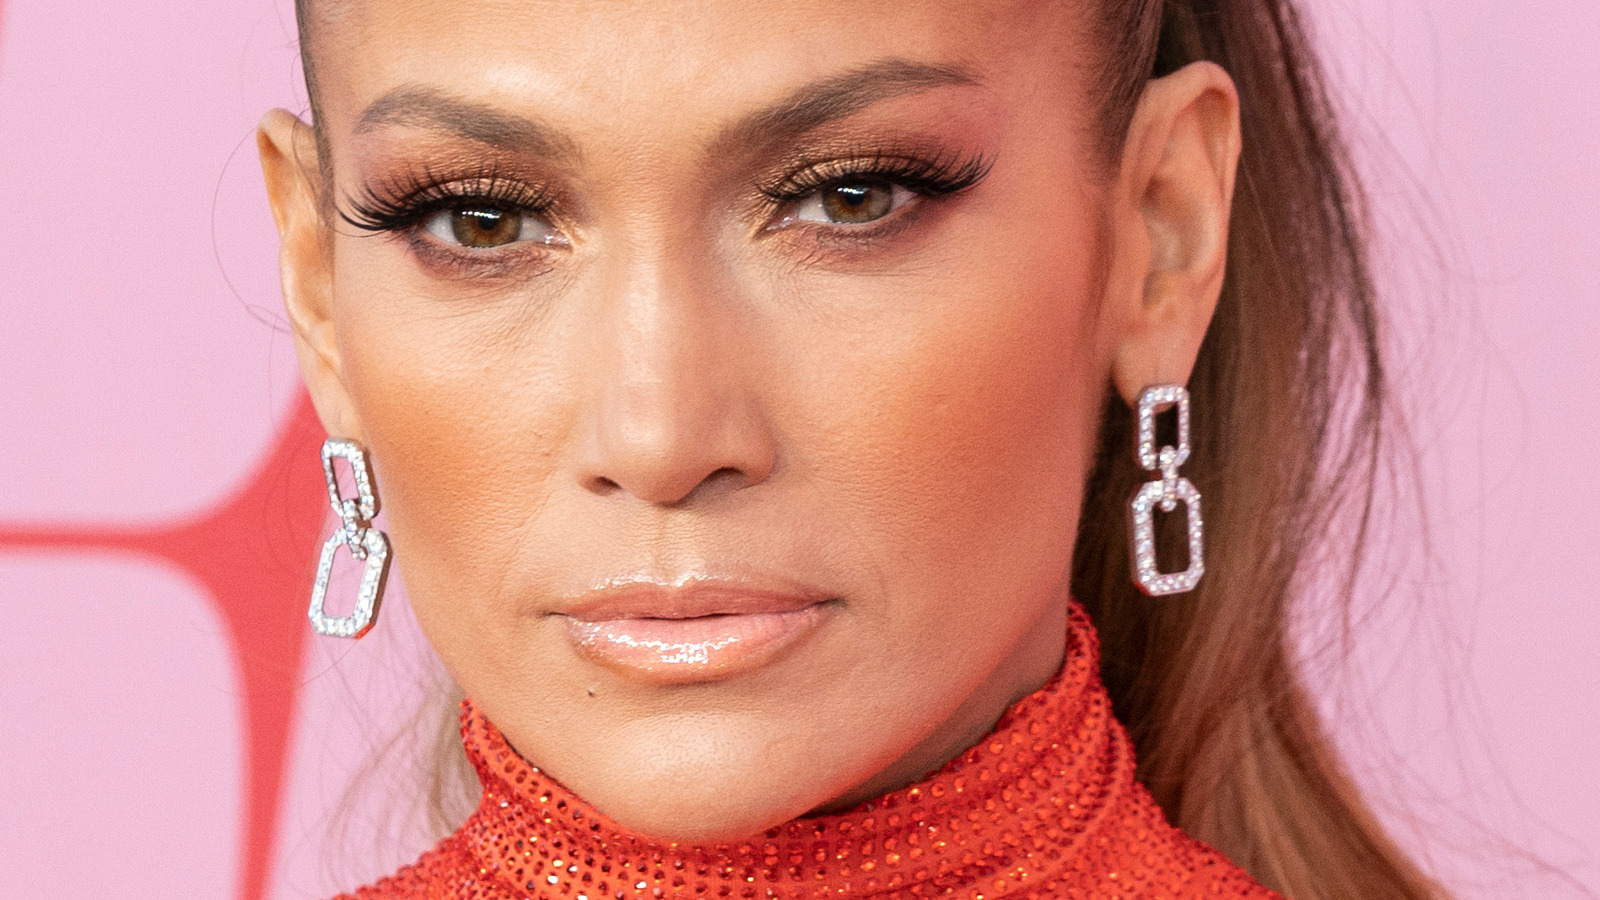 Jennifer Lopez Just Set The Internet On Fire. Here's How